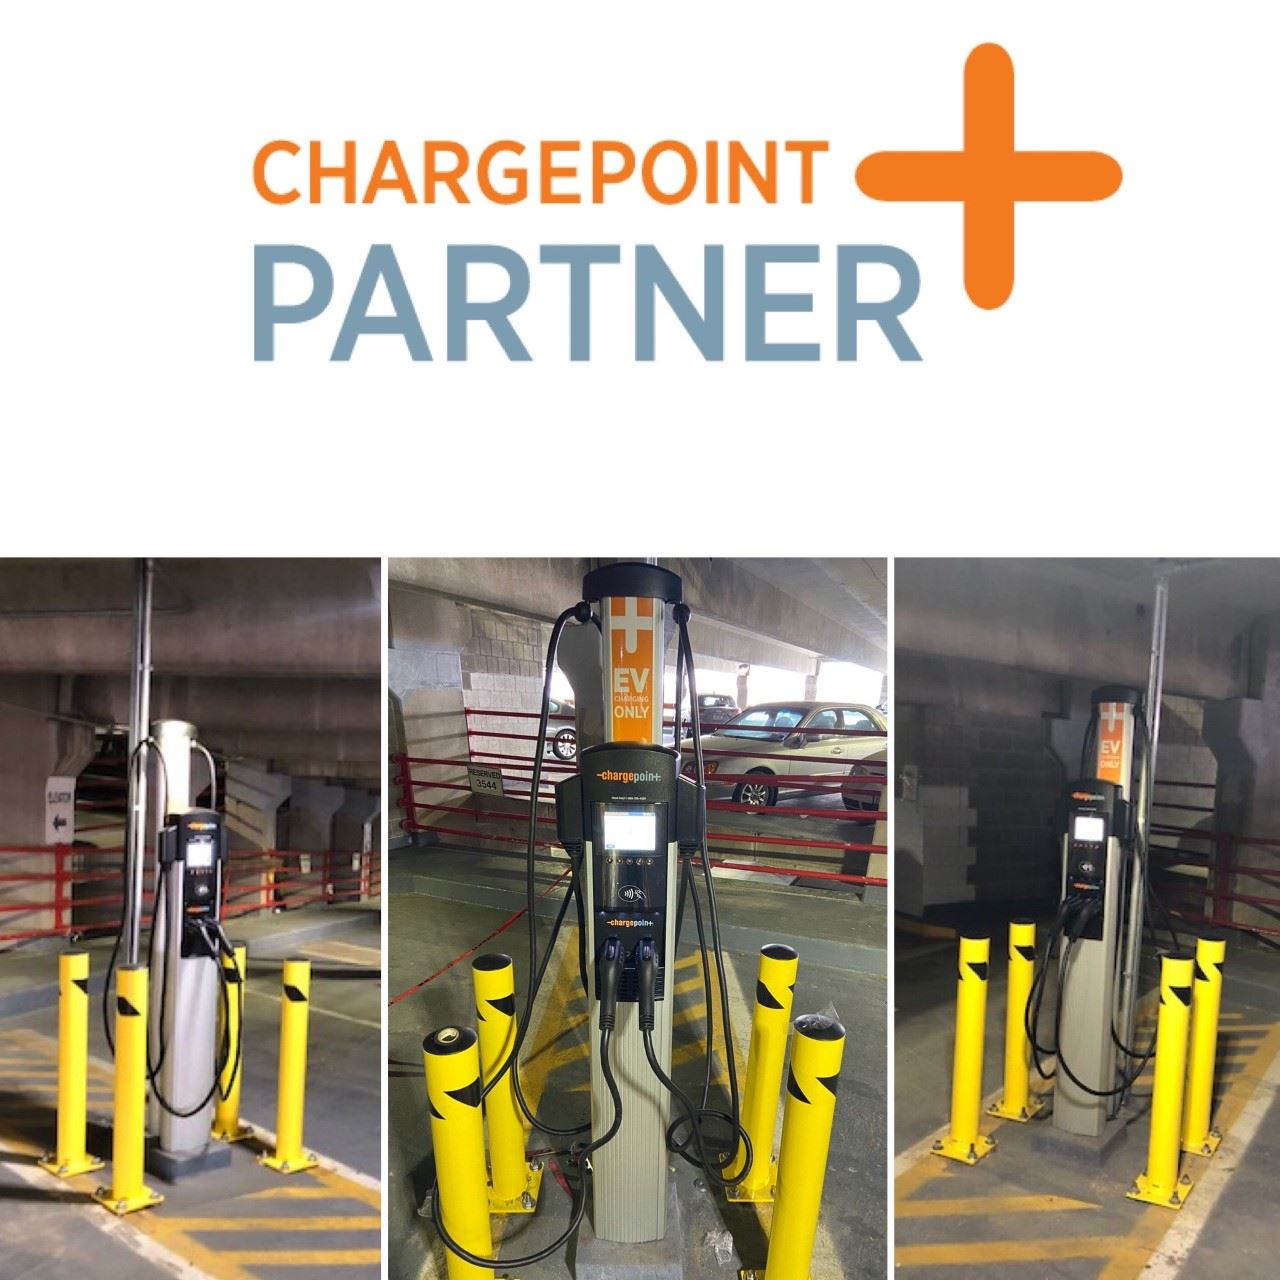 Electric Vehicle ChargePoint Motorgate Stations